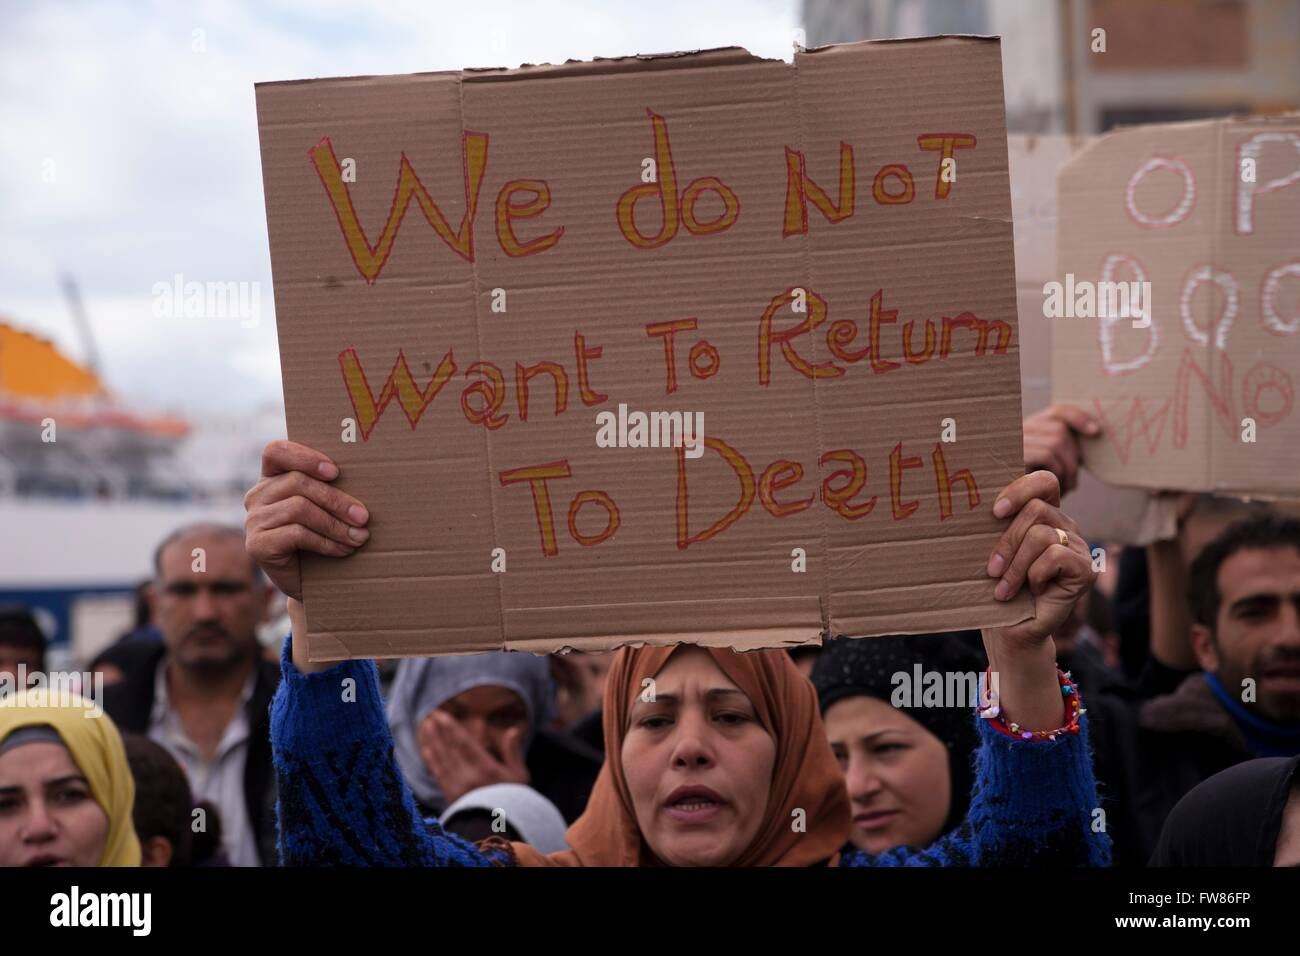 Afghan refugees at habour of Piraeus. Sing 'We don_t want to return to death'. Refugees demand opening of - Stock Image